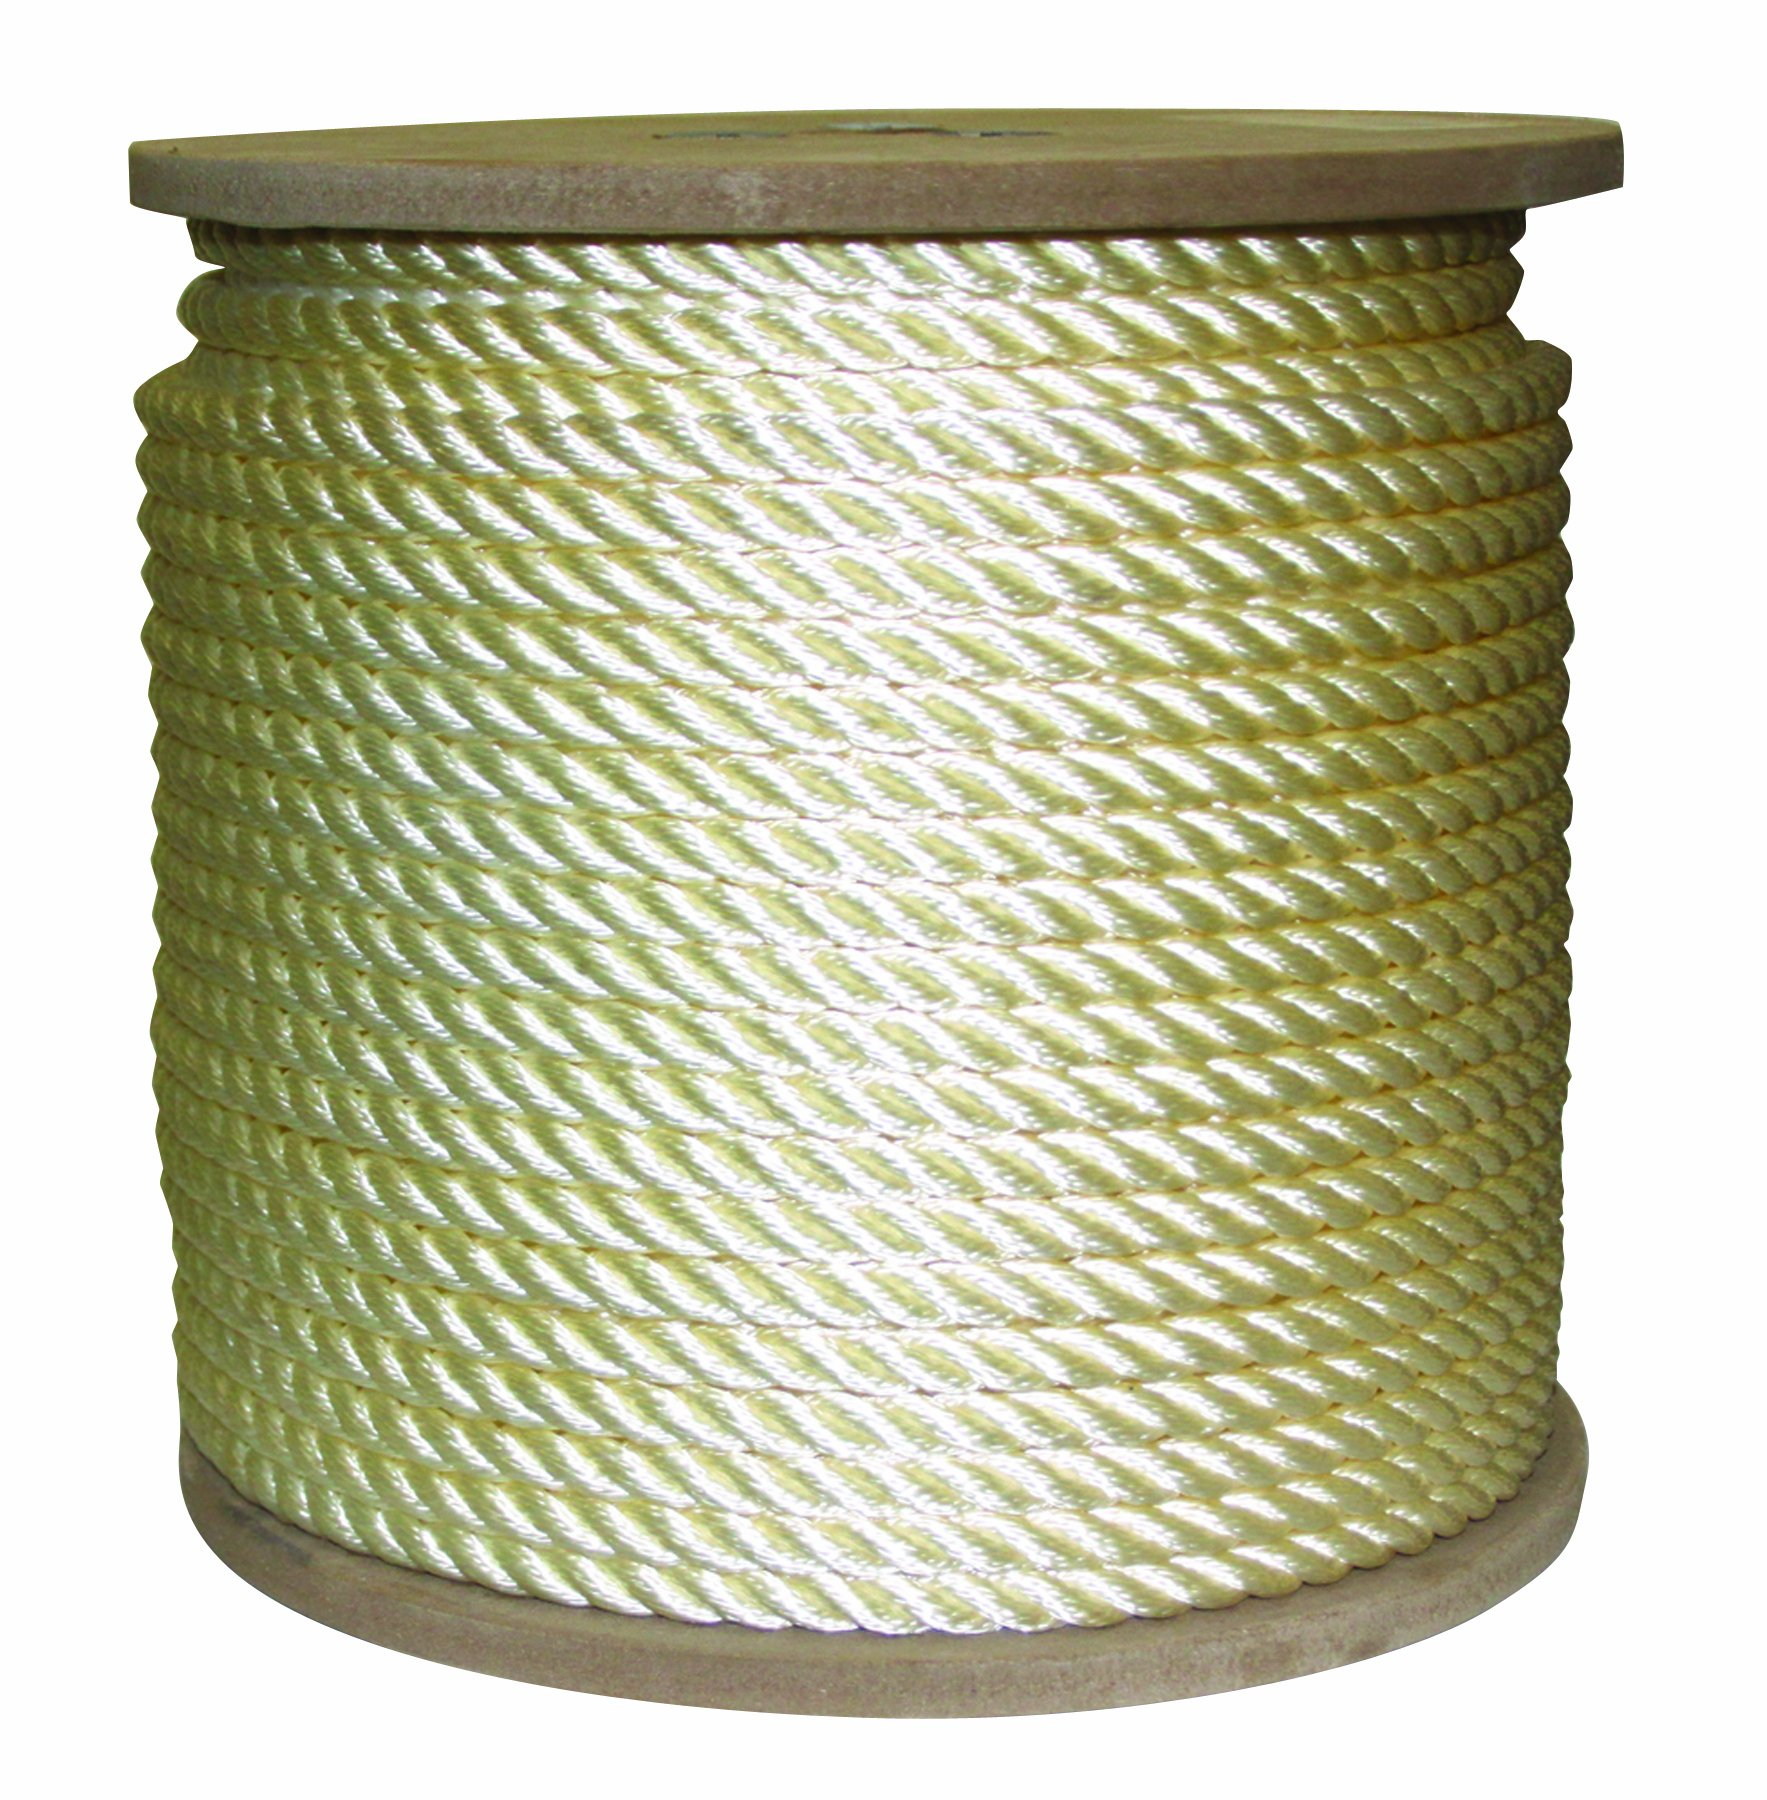 Rope King TN-12400 Twisted Nylon Rope 1/2 inch x 400 feet